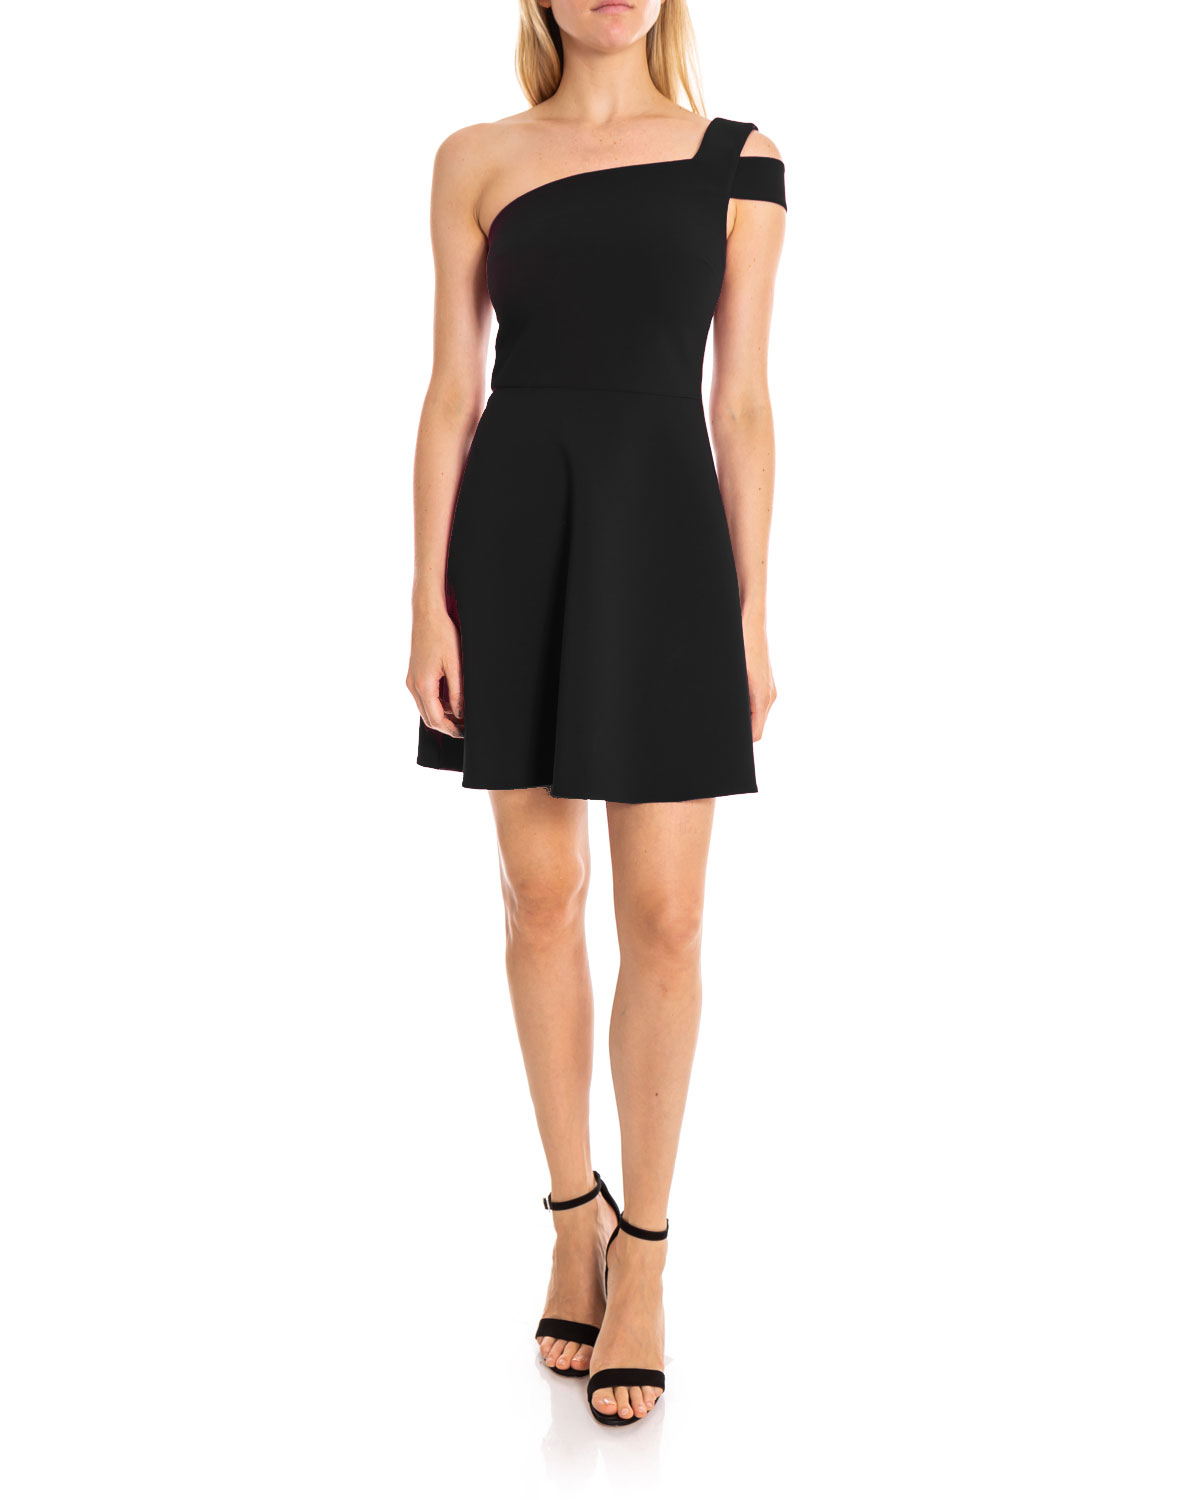 Montgomery One Shoulder Fit & Flare Cocktail Dress by Likely